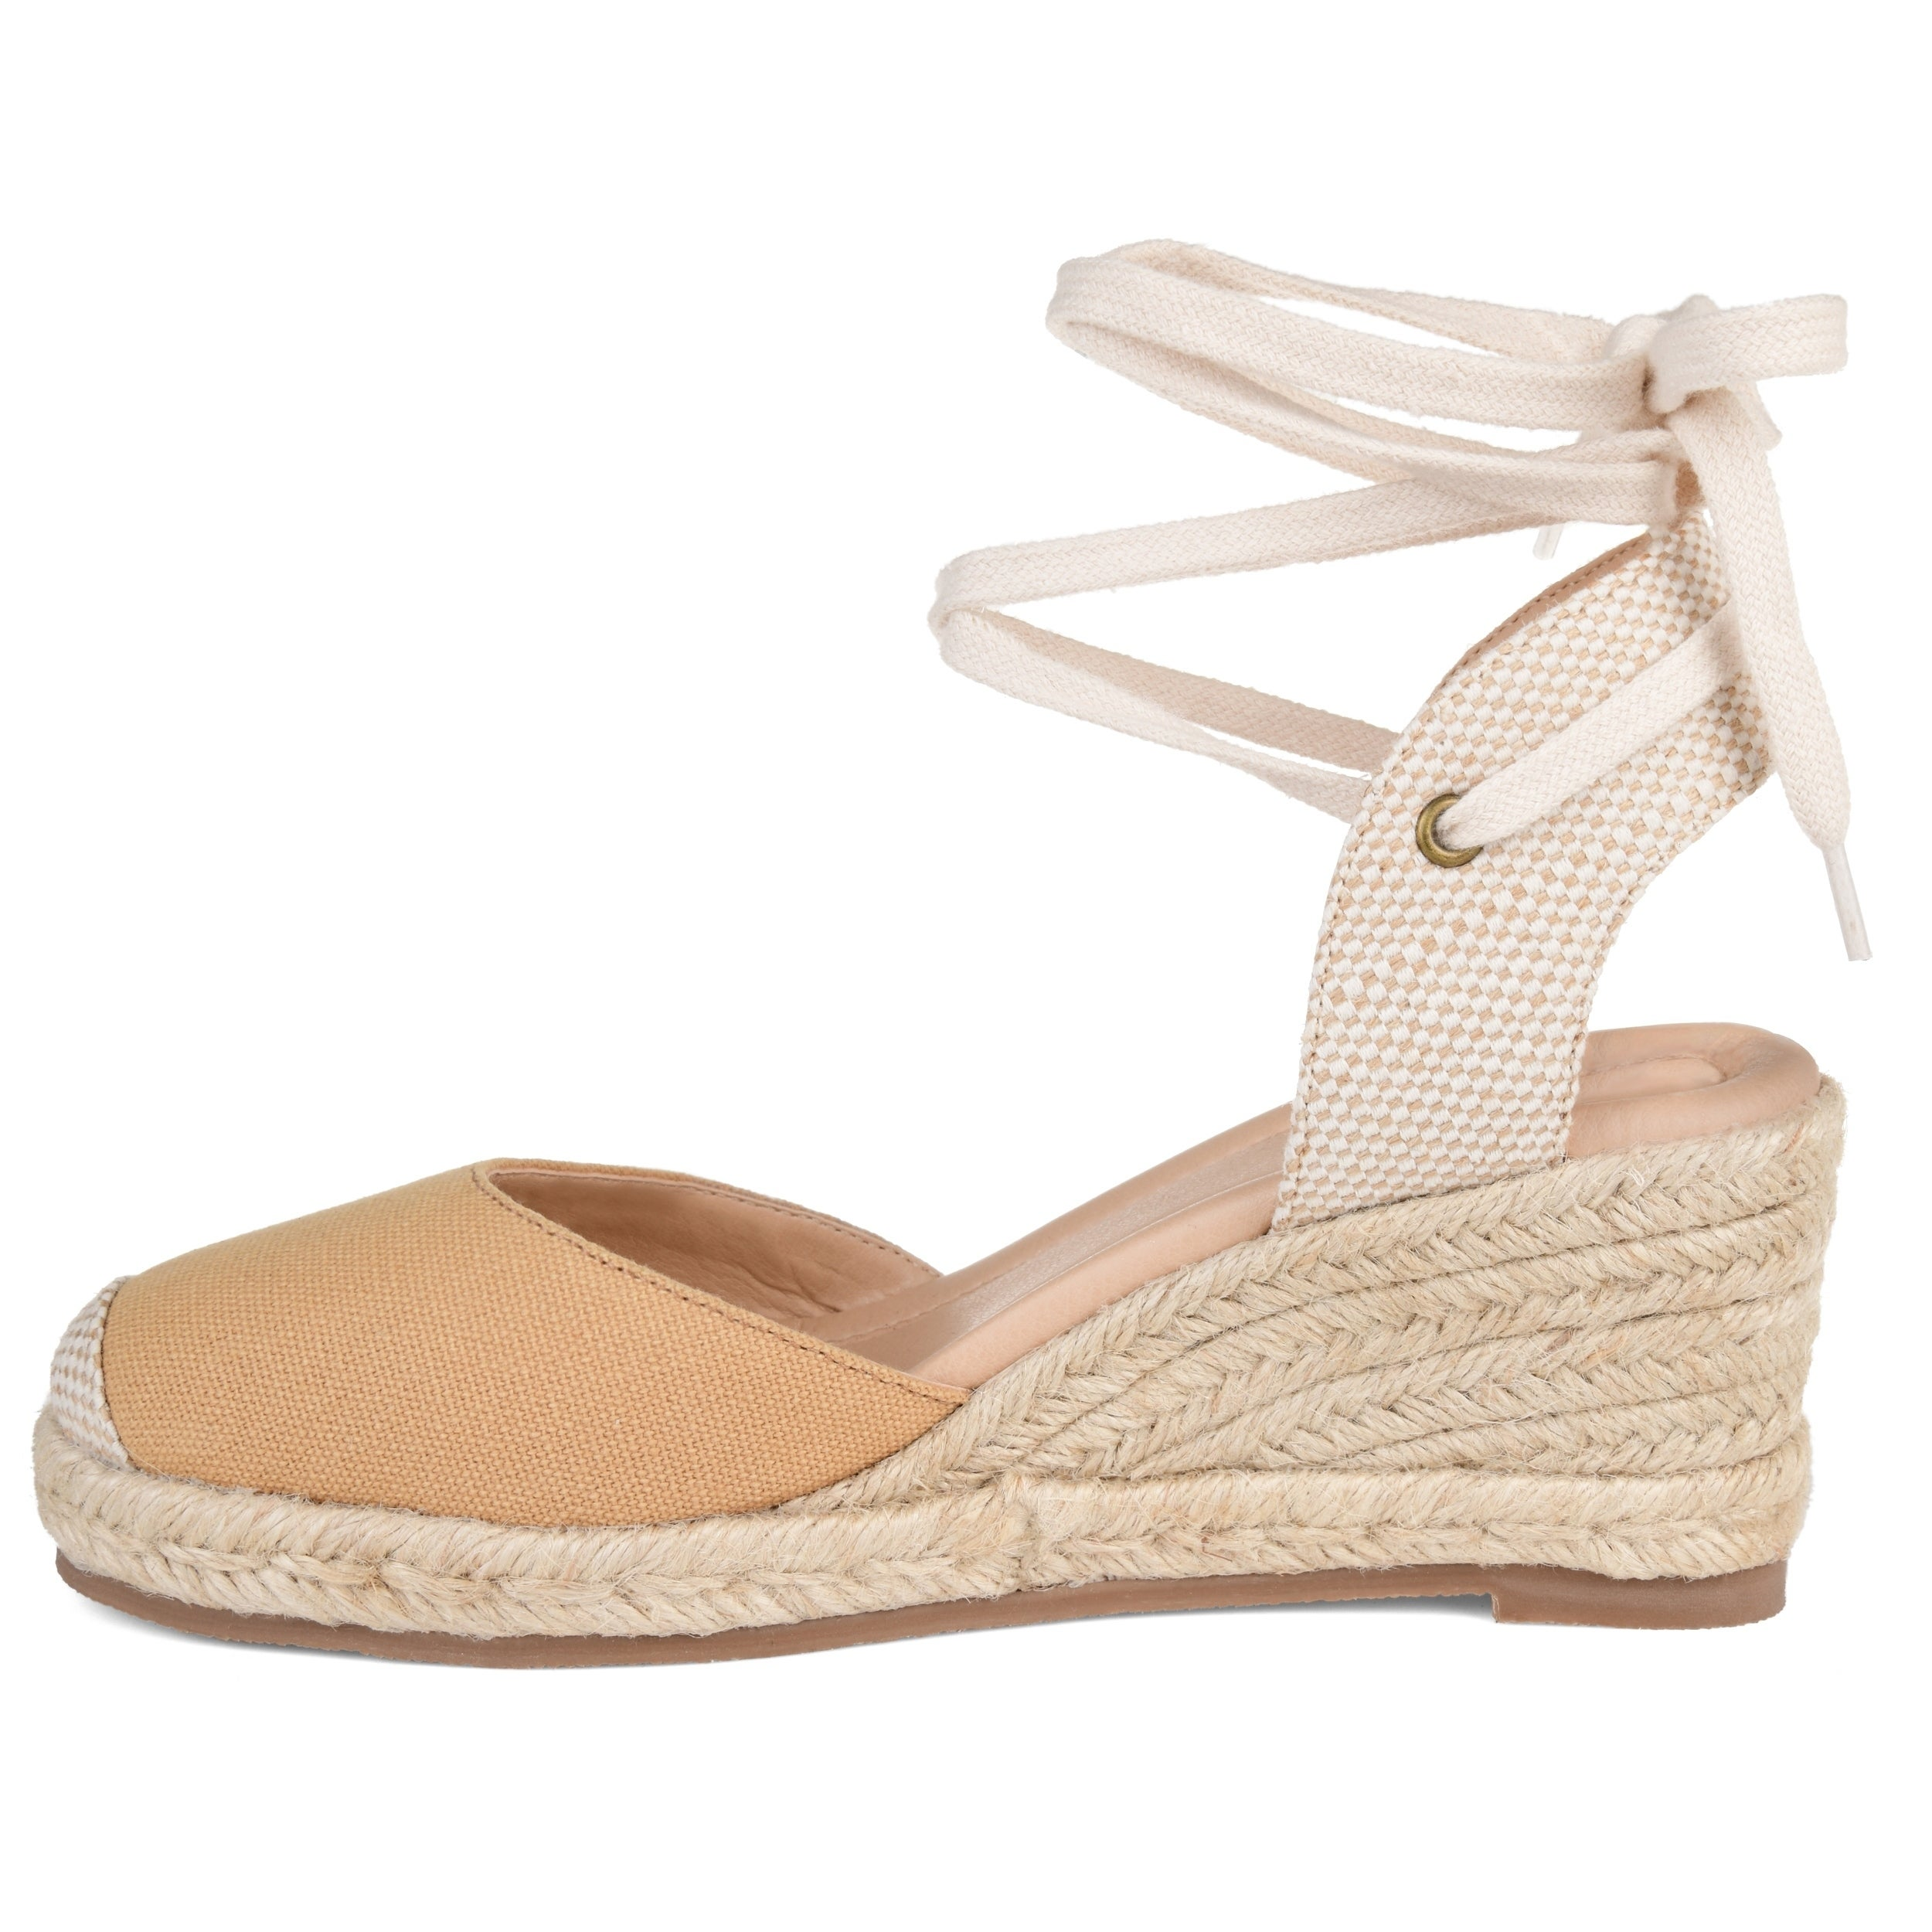 4522dfa6919 Shop Journee Collection Women s Comfort Monte Wedge - On Sale - Free  Shipping Today - Overstock - 21873790